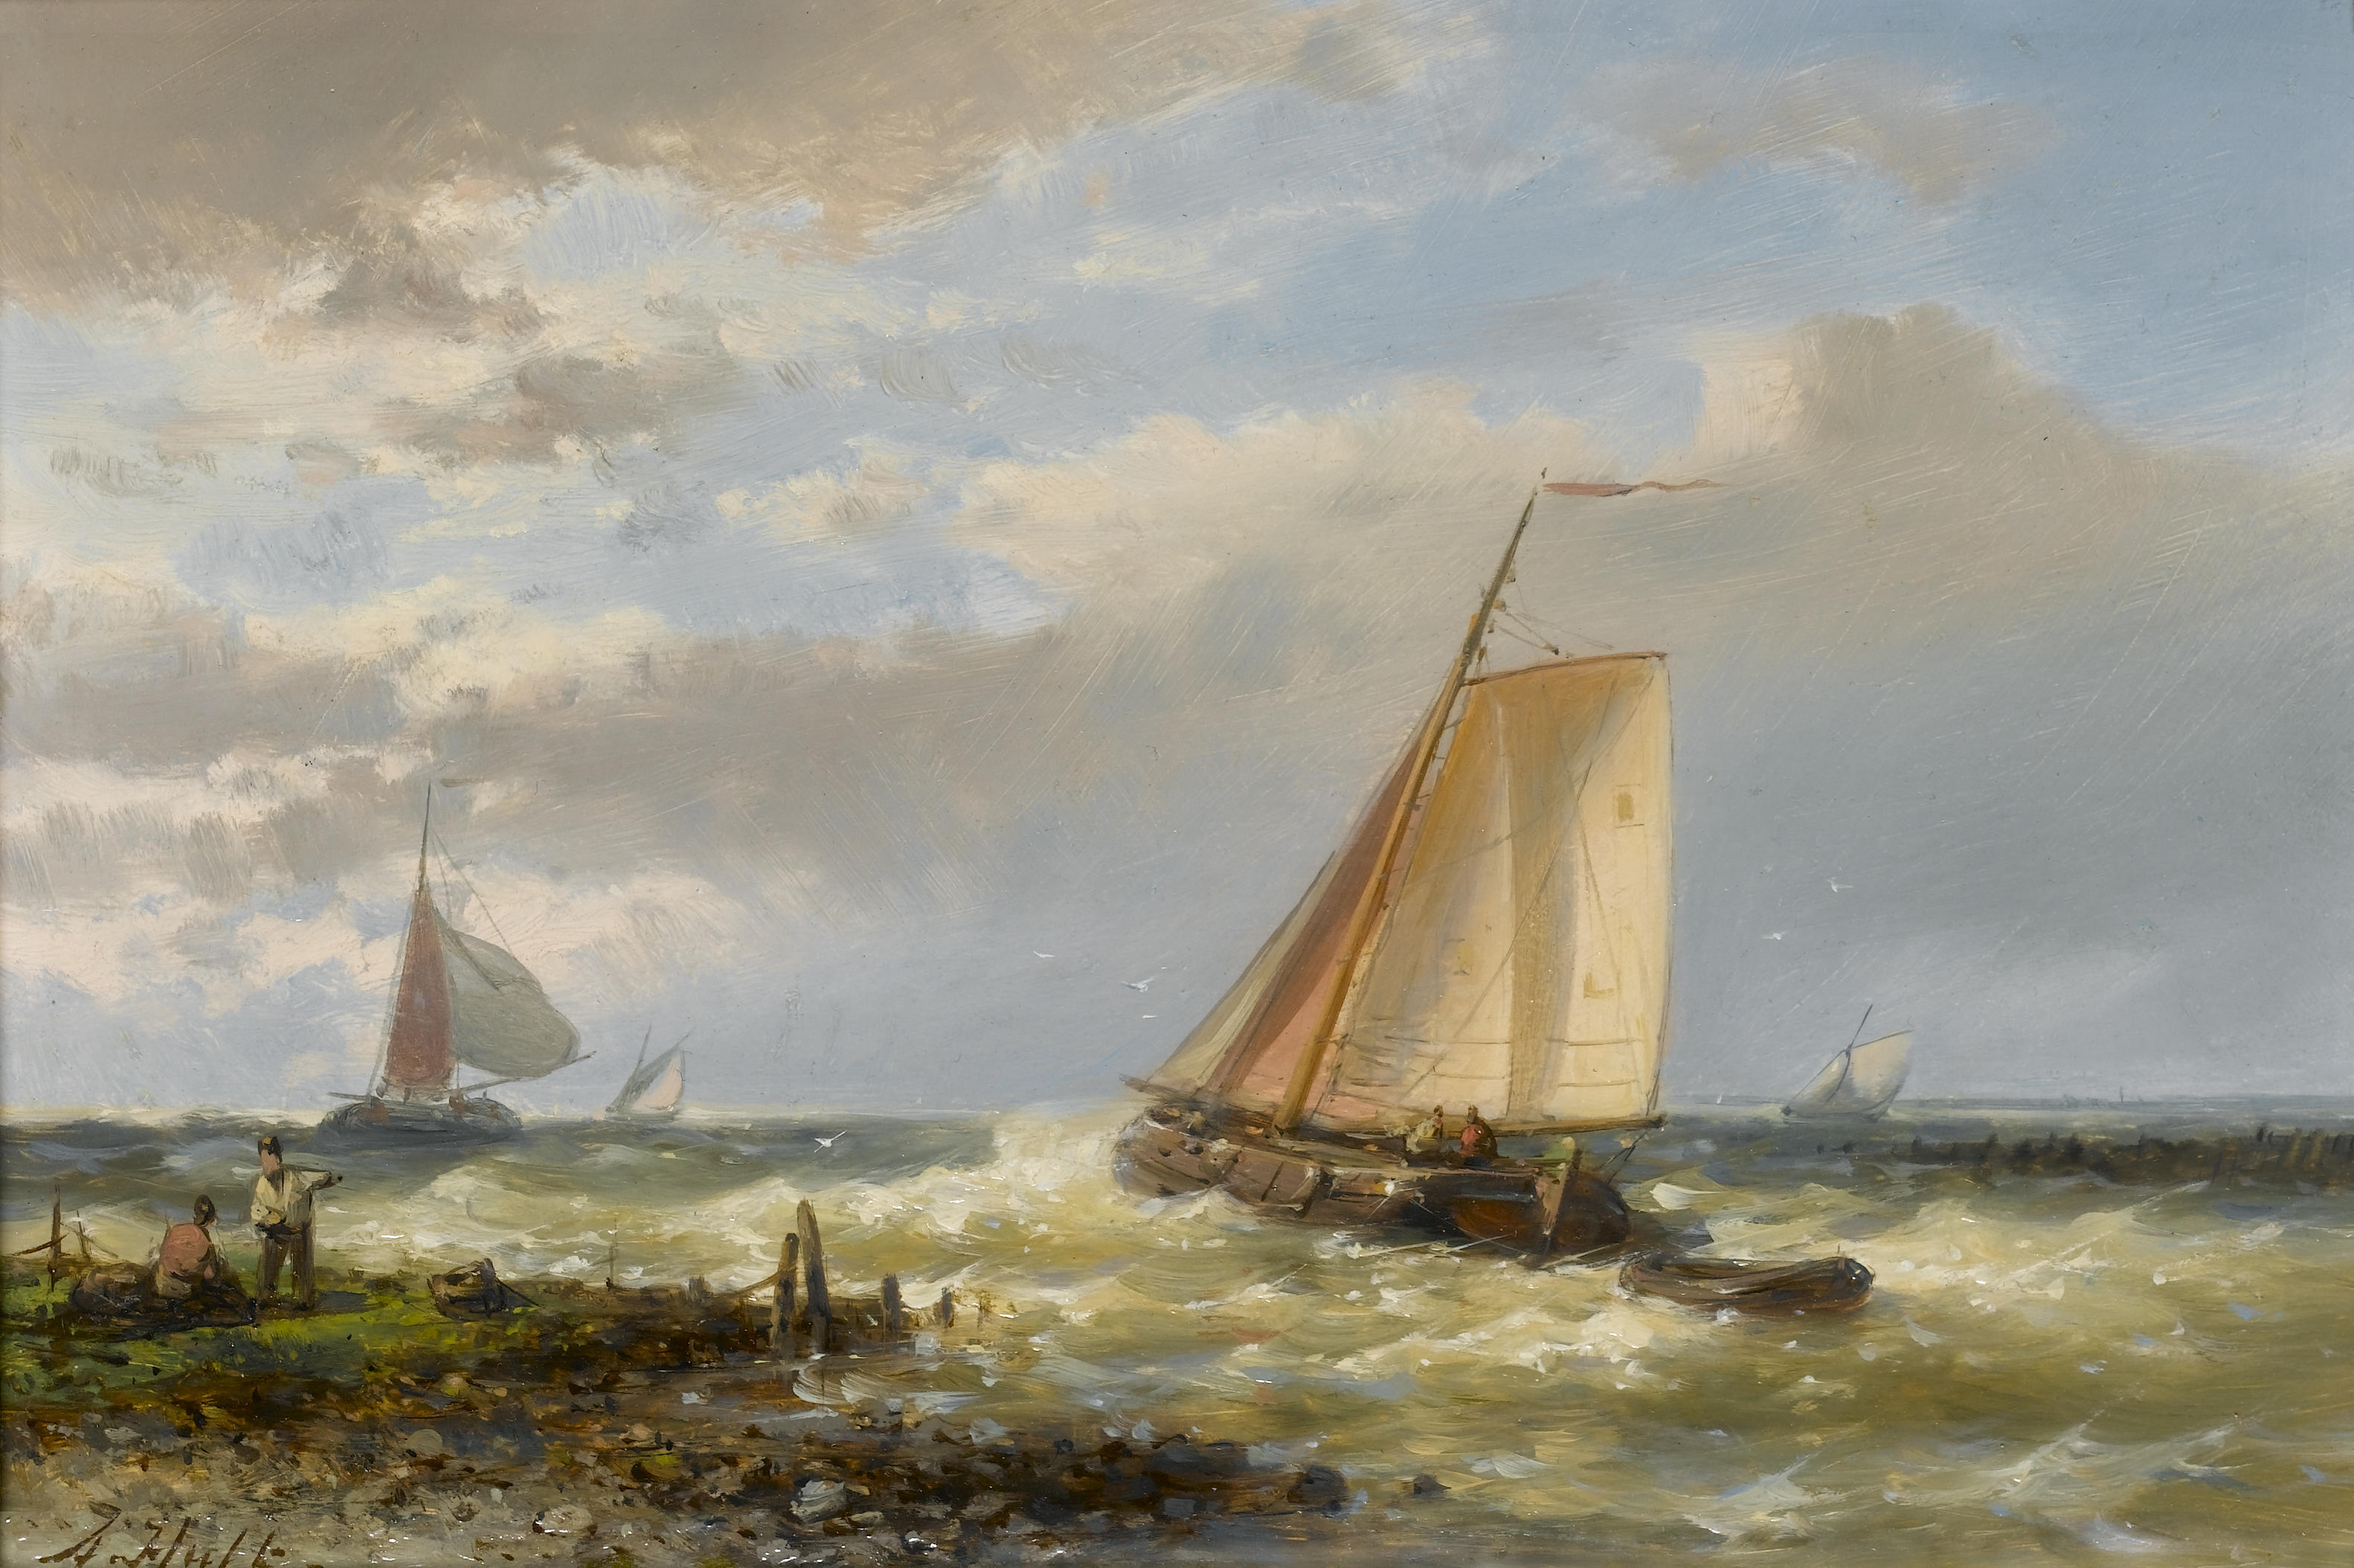 file abraham hulk fishing boats running out of port against the